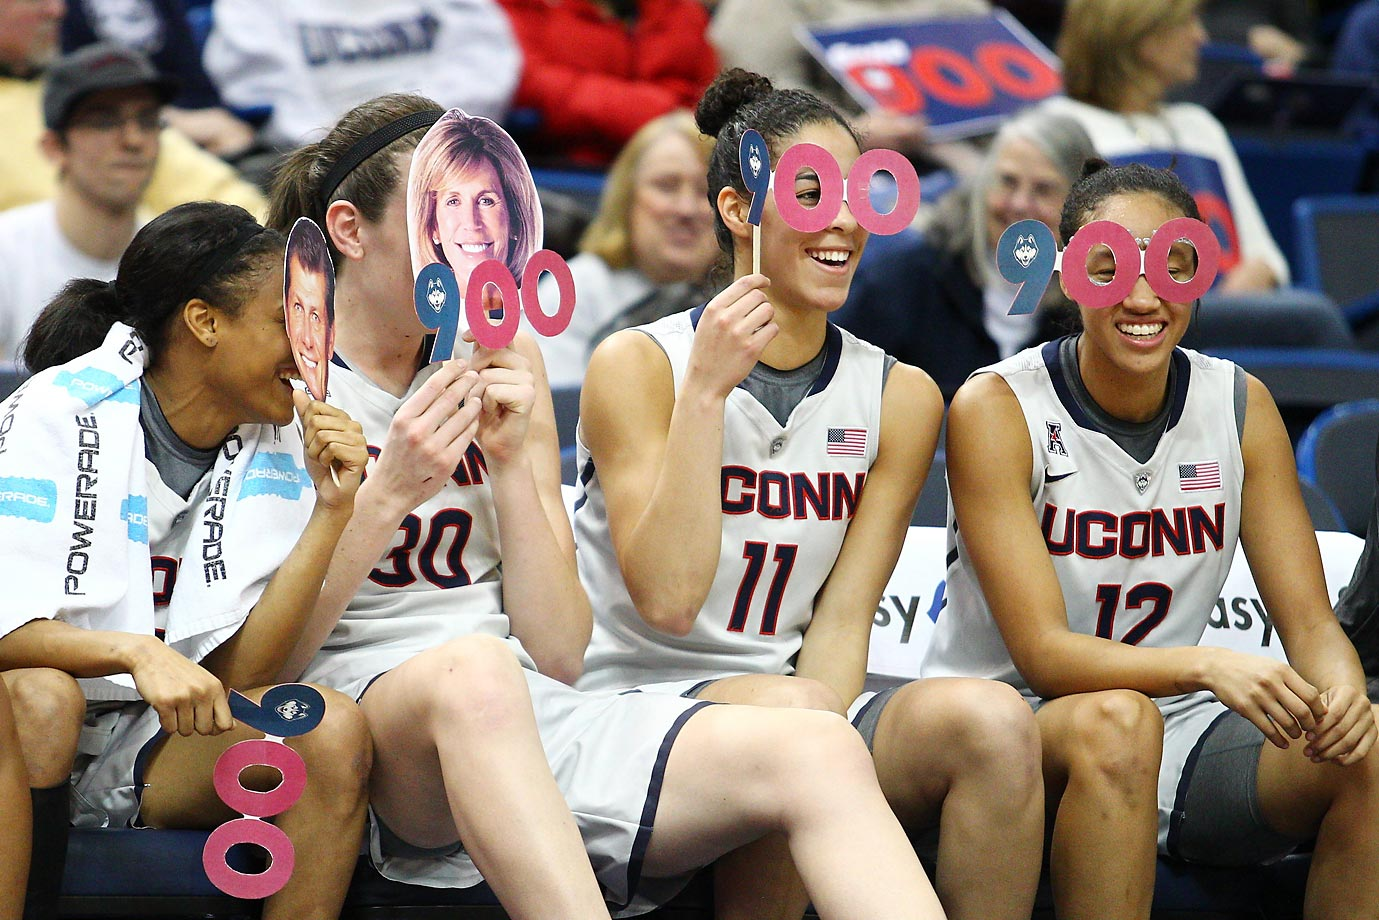 The UConn Huskies were thrilled about coach Geno Auriemma's 900th career win.